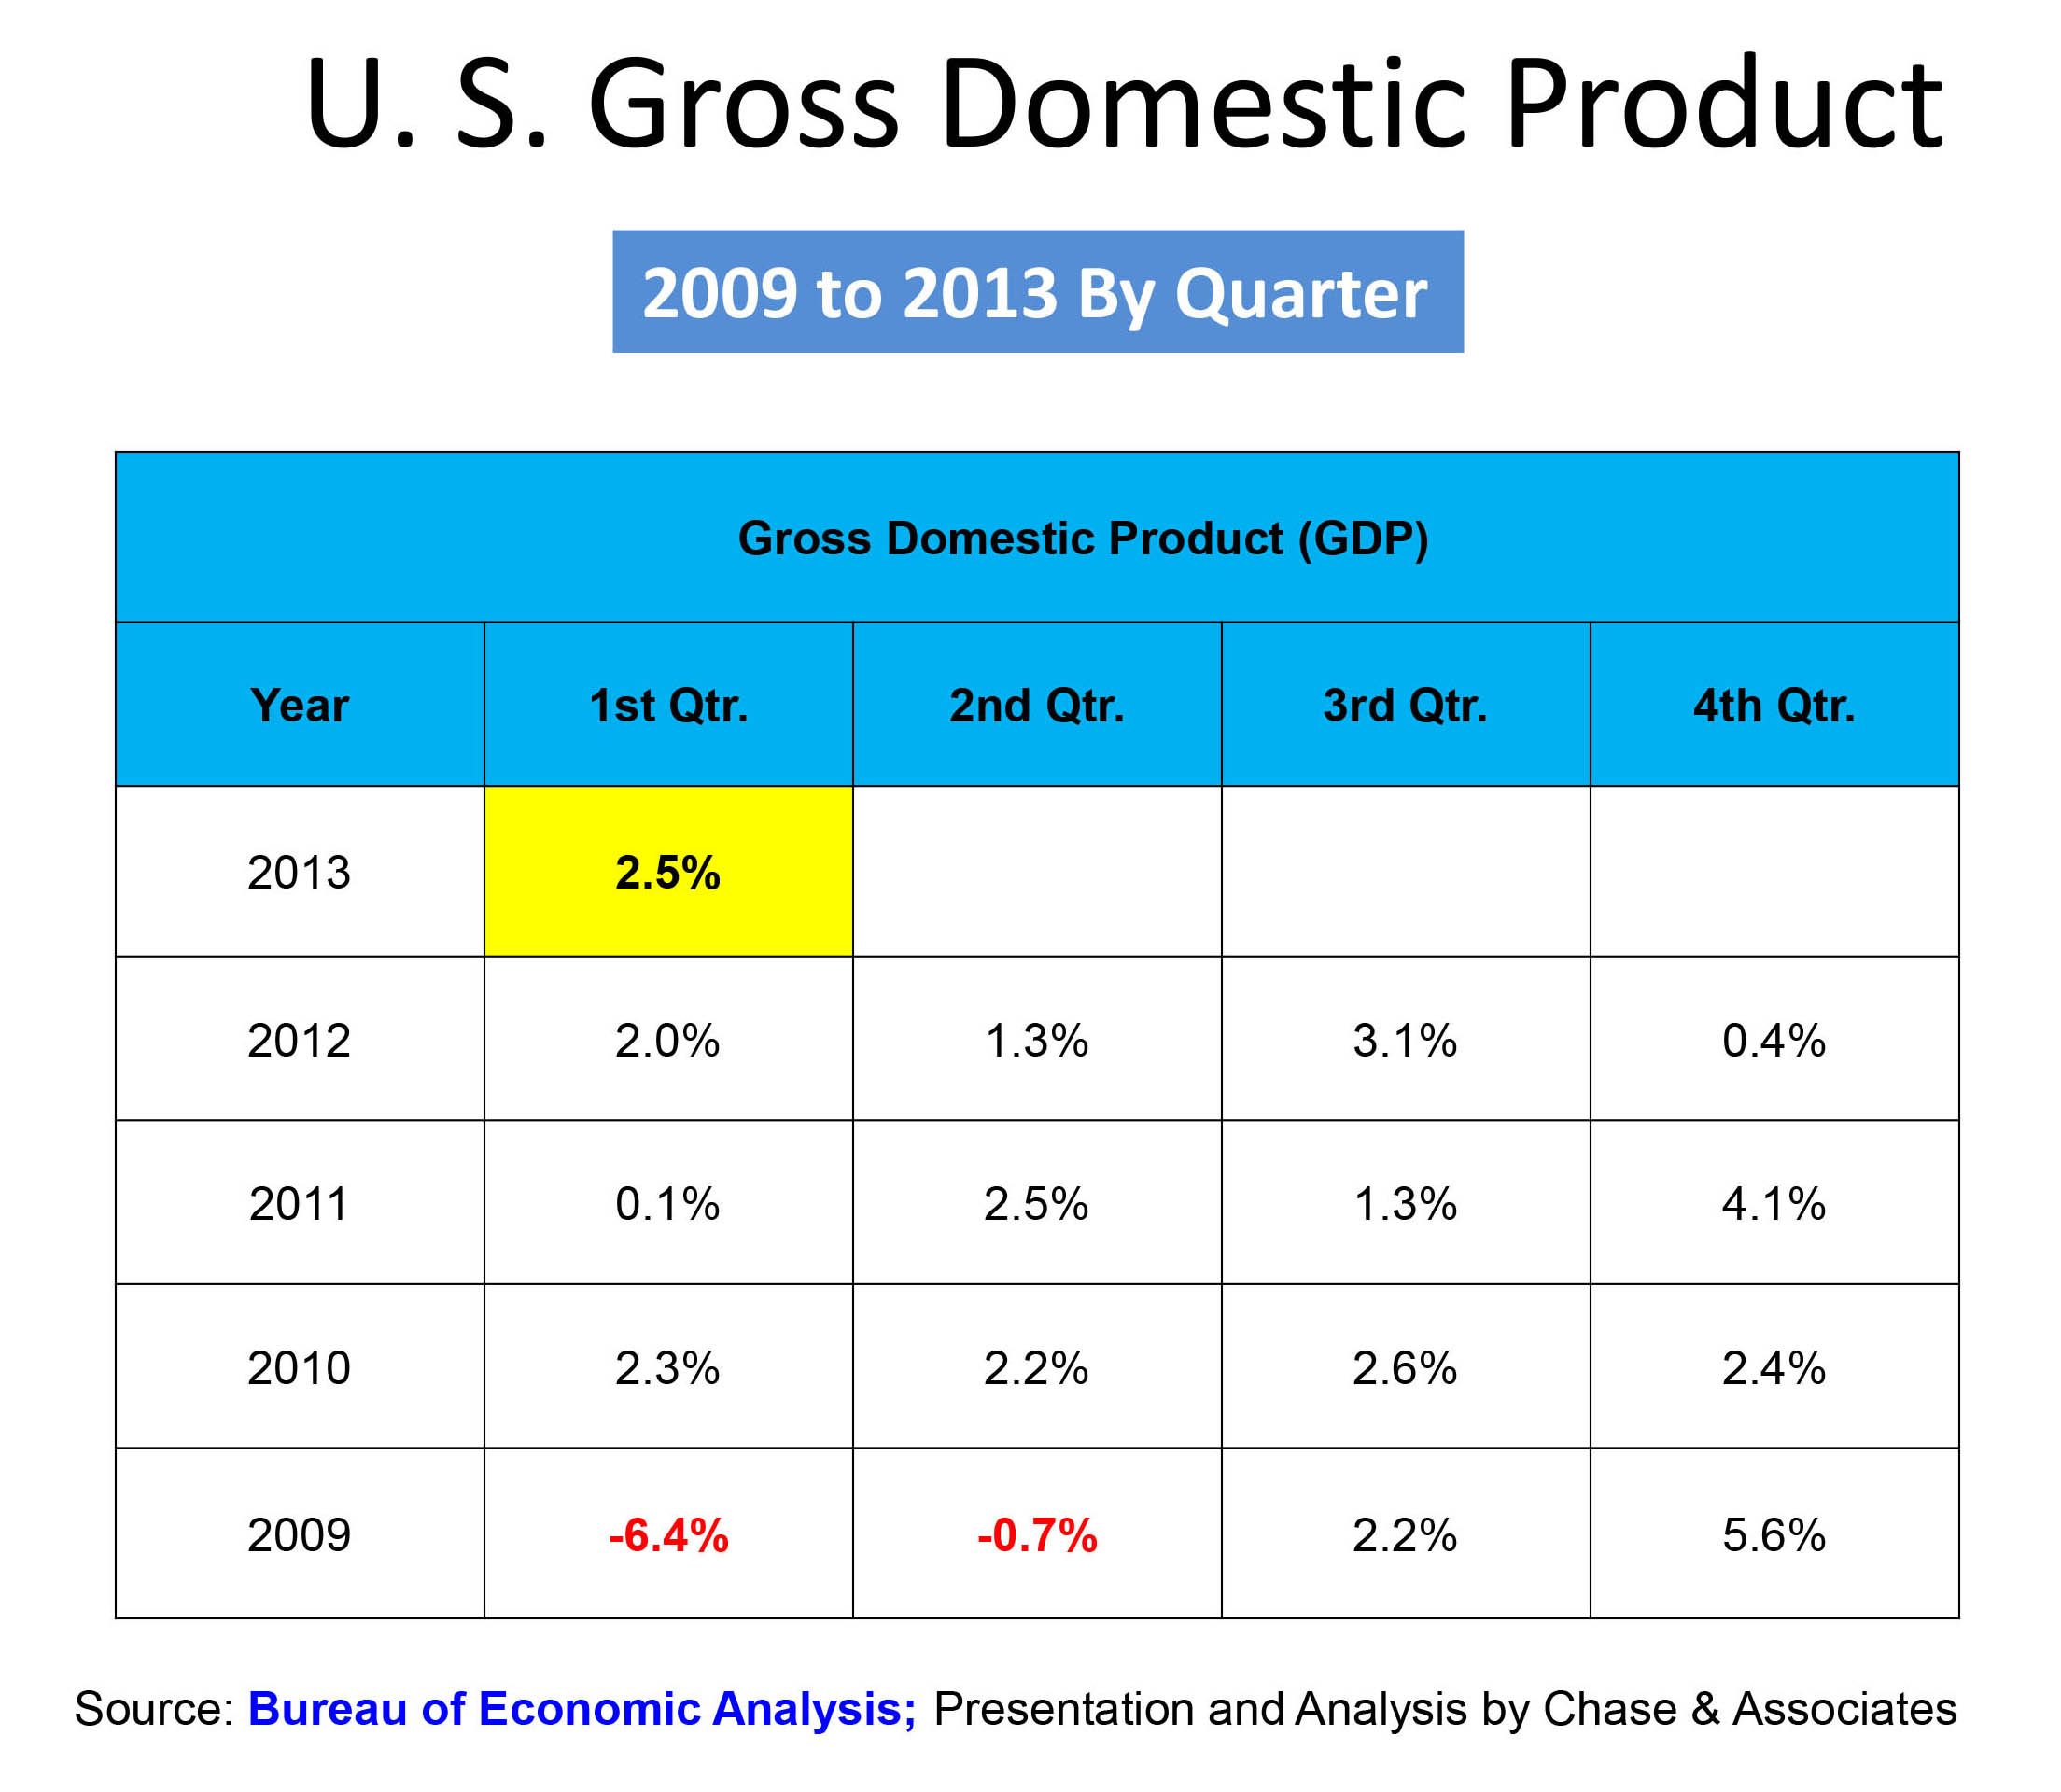 gross domestic product terms definitions essay Gdp vs gnp gdp (or gross domestic product) and gnp (gross national product) represent the size and strength of the economy while both concepts are similar, their definition, calculation and applications are different from each other.